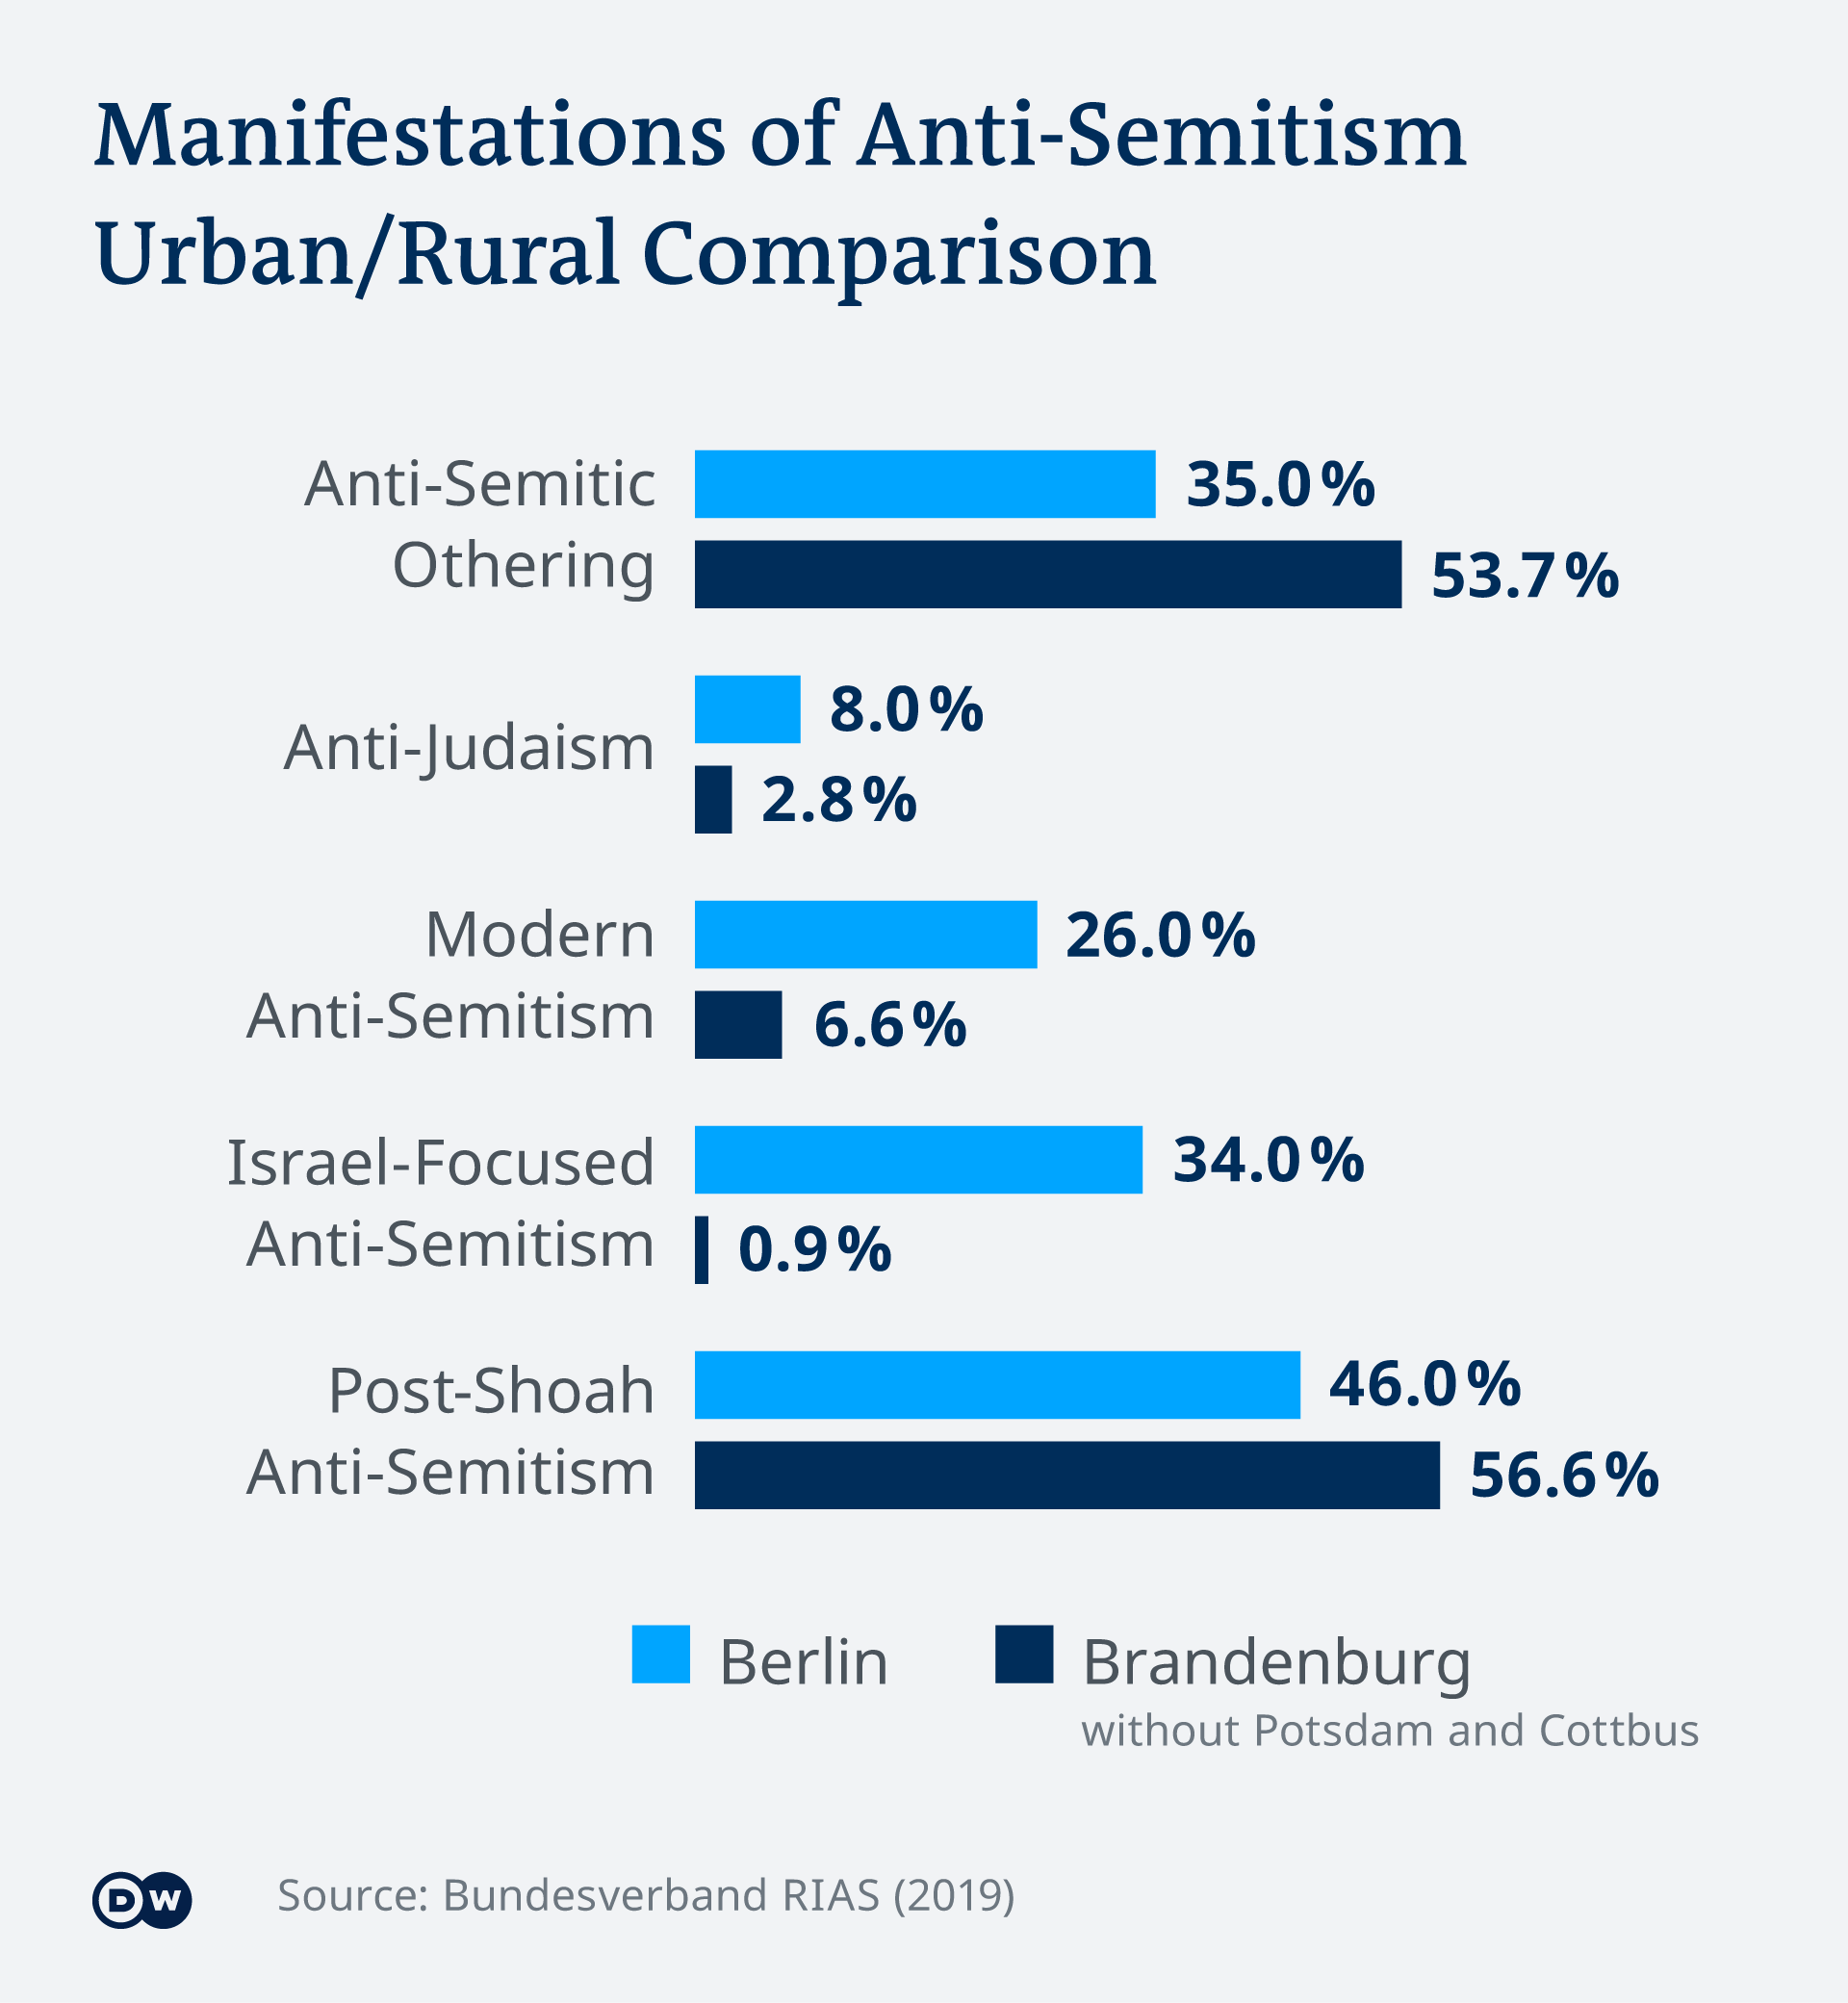 Infographic comparing urban and rural areas and anti-Semitic incidents